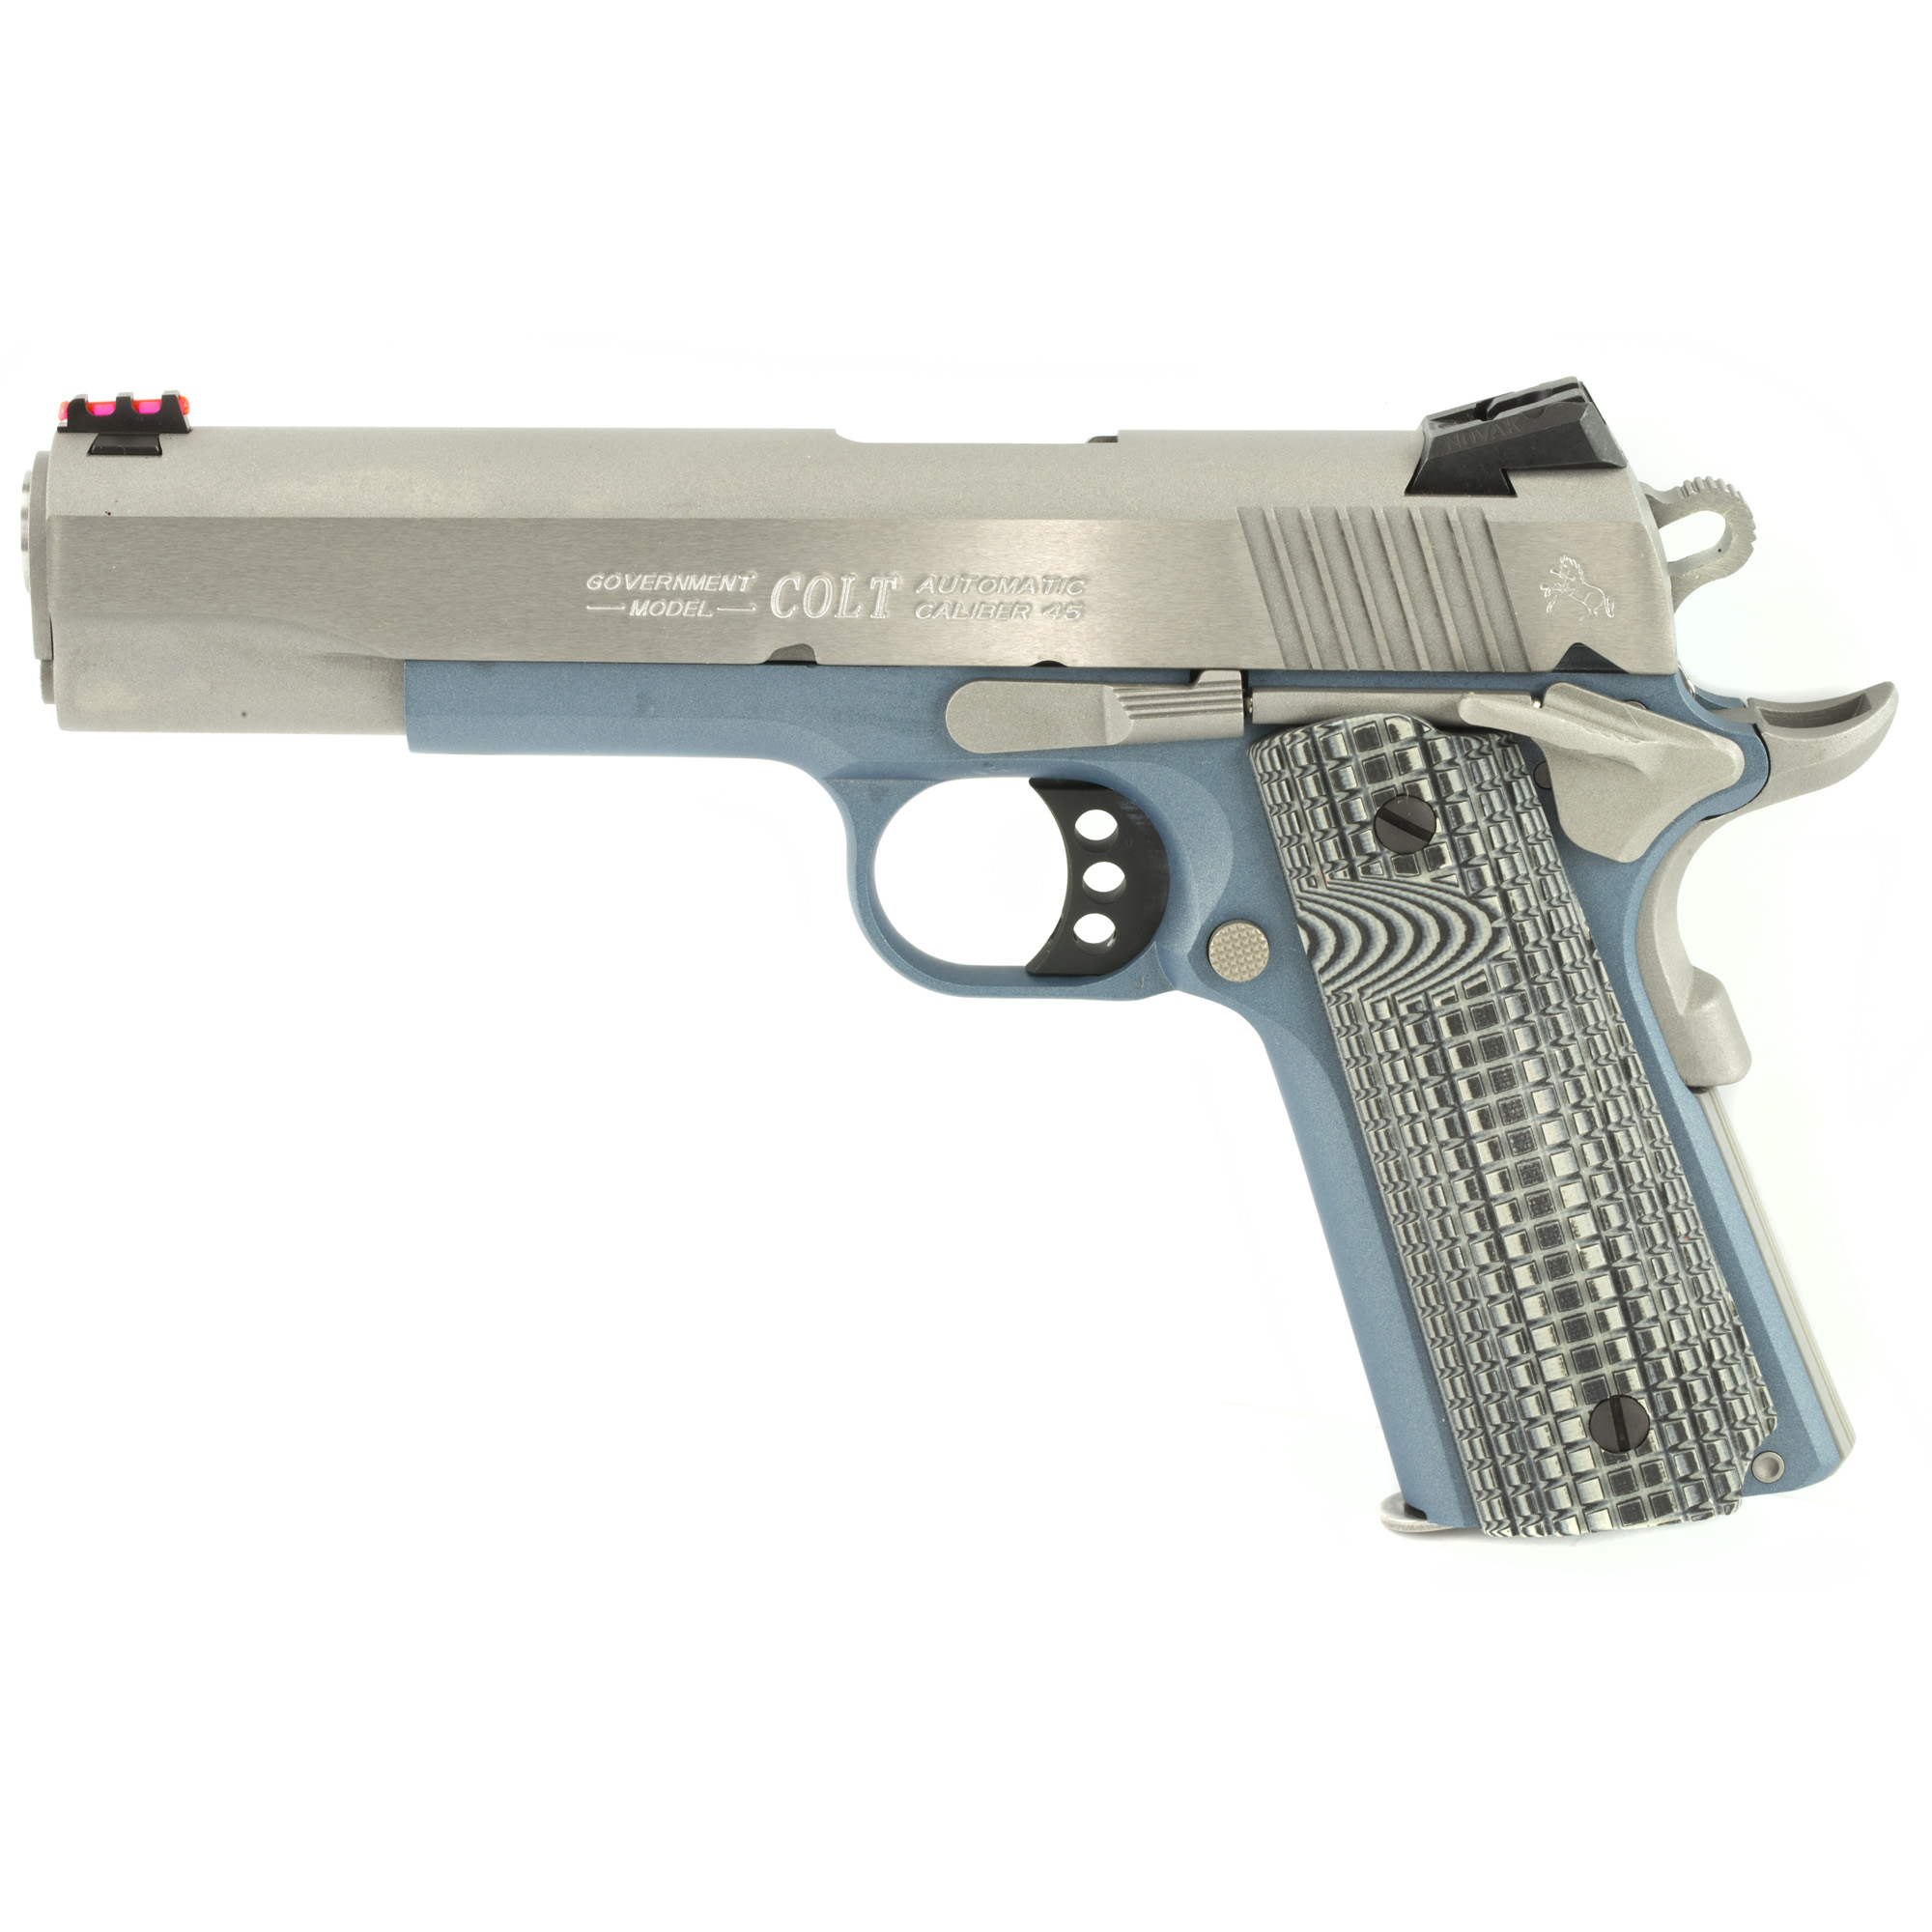 "A true competition 1911 that's ready for the battle against the timer. Now available in corrosion resistant Stainless Steel with a Special Edition Blue Titanium finish. Custom G10 Grips"" Upswept Beavertail Grip Safety"" and Undercut Trigger Guard keep the pistol low in the hand for increased control. The Dual Recoil spring system reduces felt recoil while extending recoil spring life. A National Match(R) Barrel and Novak Adjustable Fiber Optic Sights help with precision shooting. The Series 70 Firing System ensures a clean crisp trigger pull."